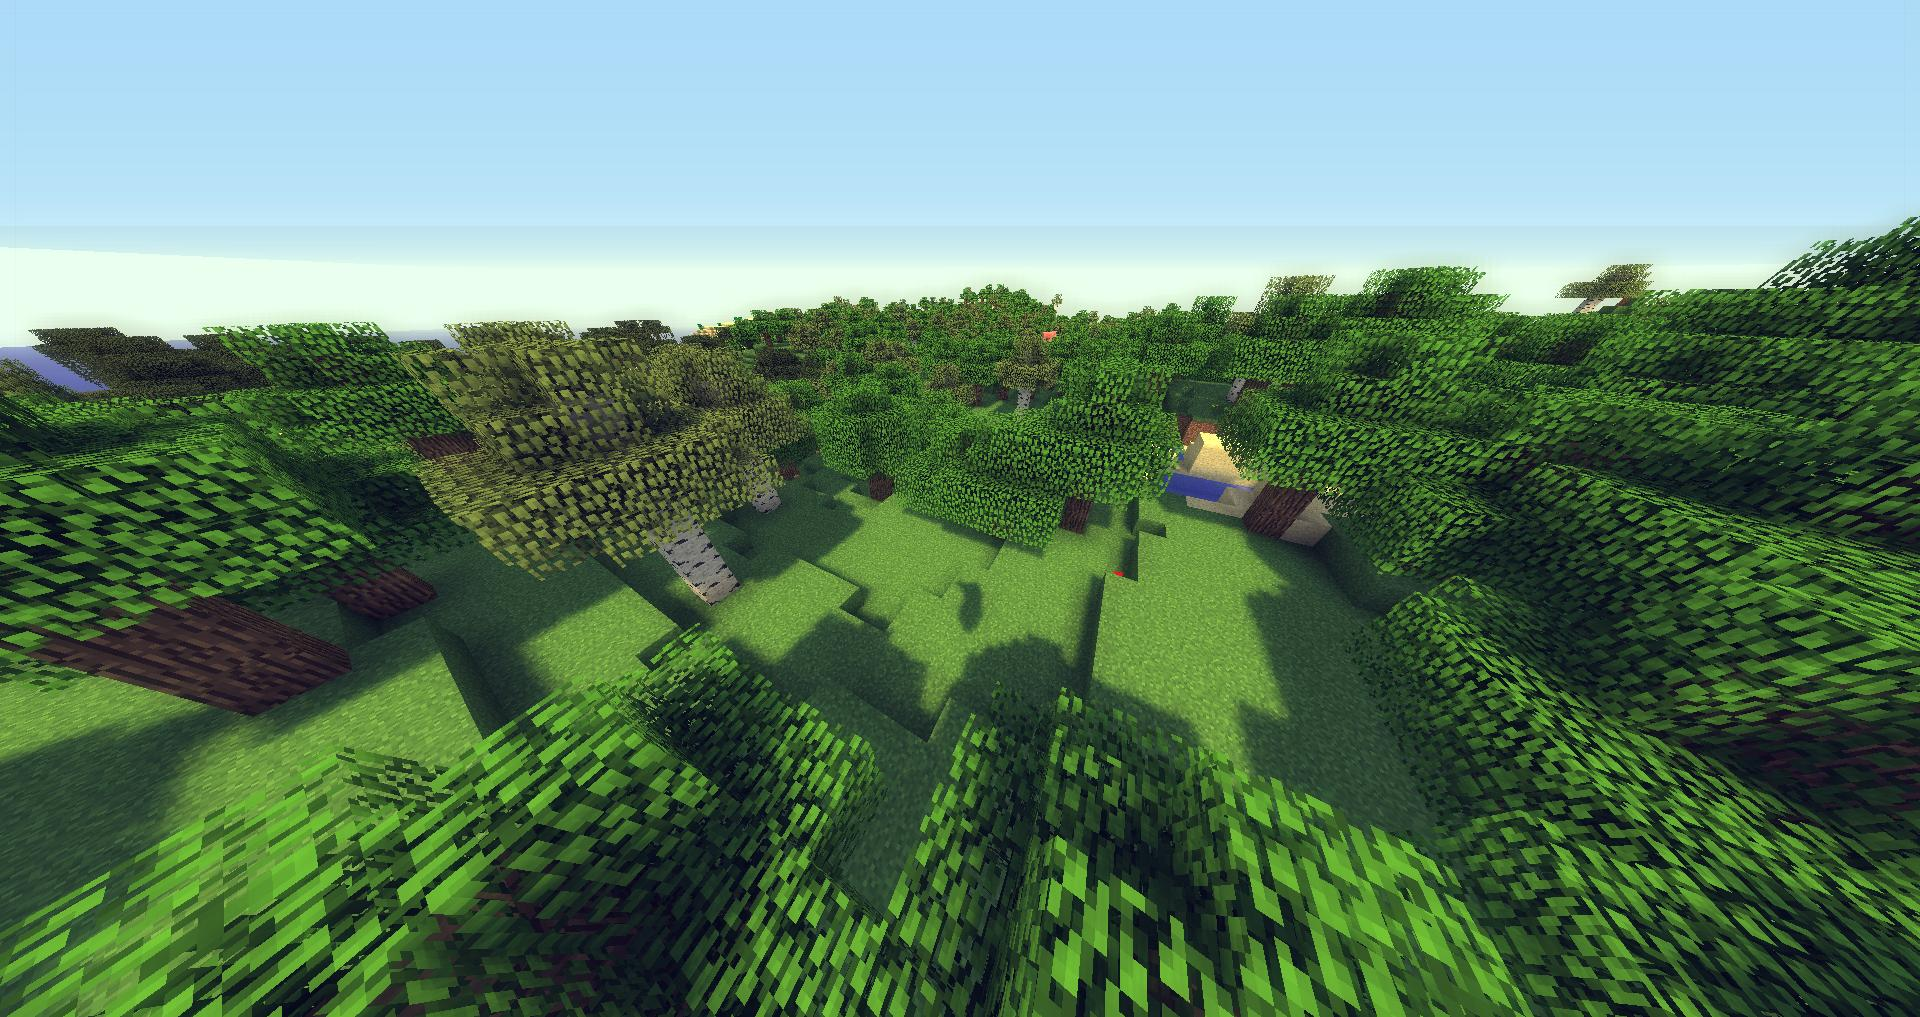 78e65  FcTs6NA [1.7.10] MrMeep x3's Shaders Mod Download